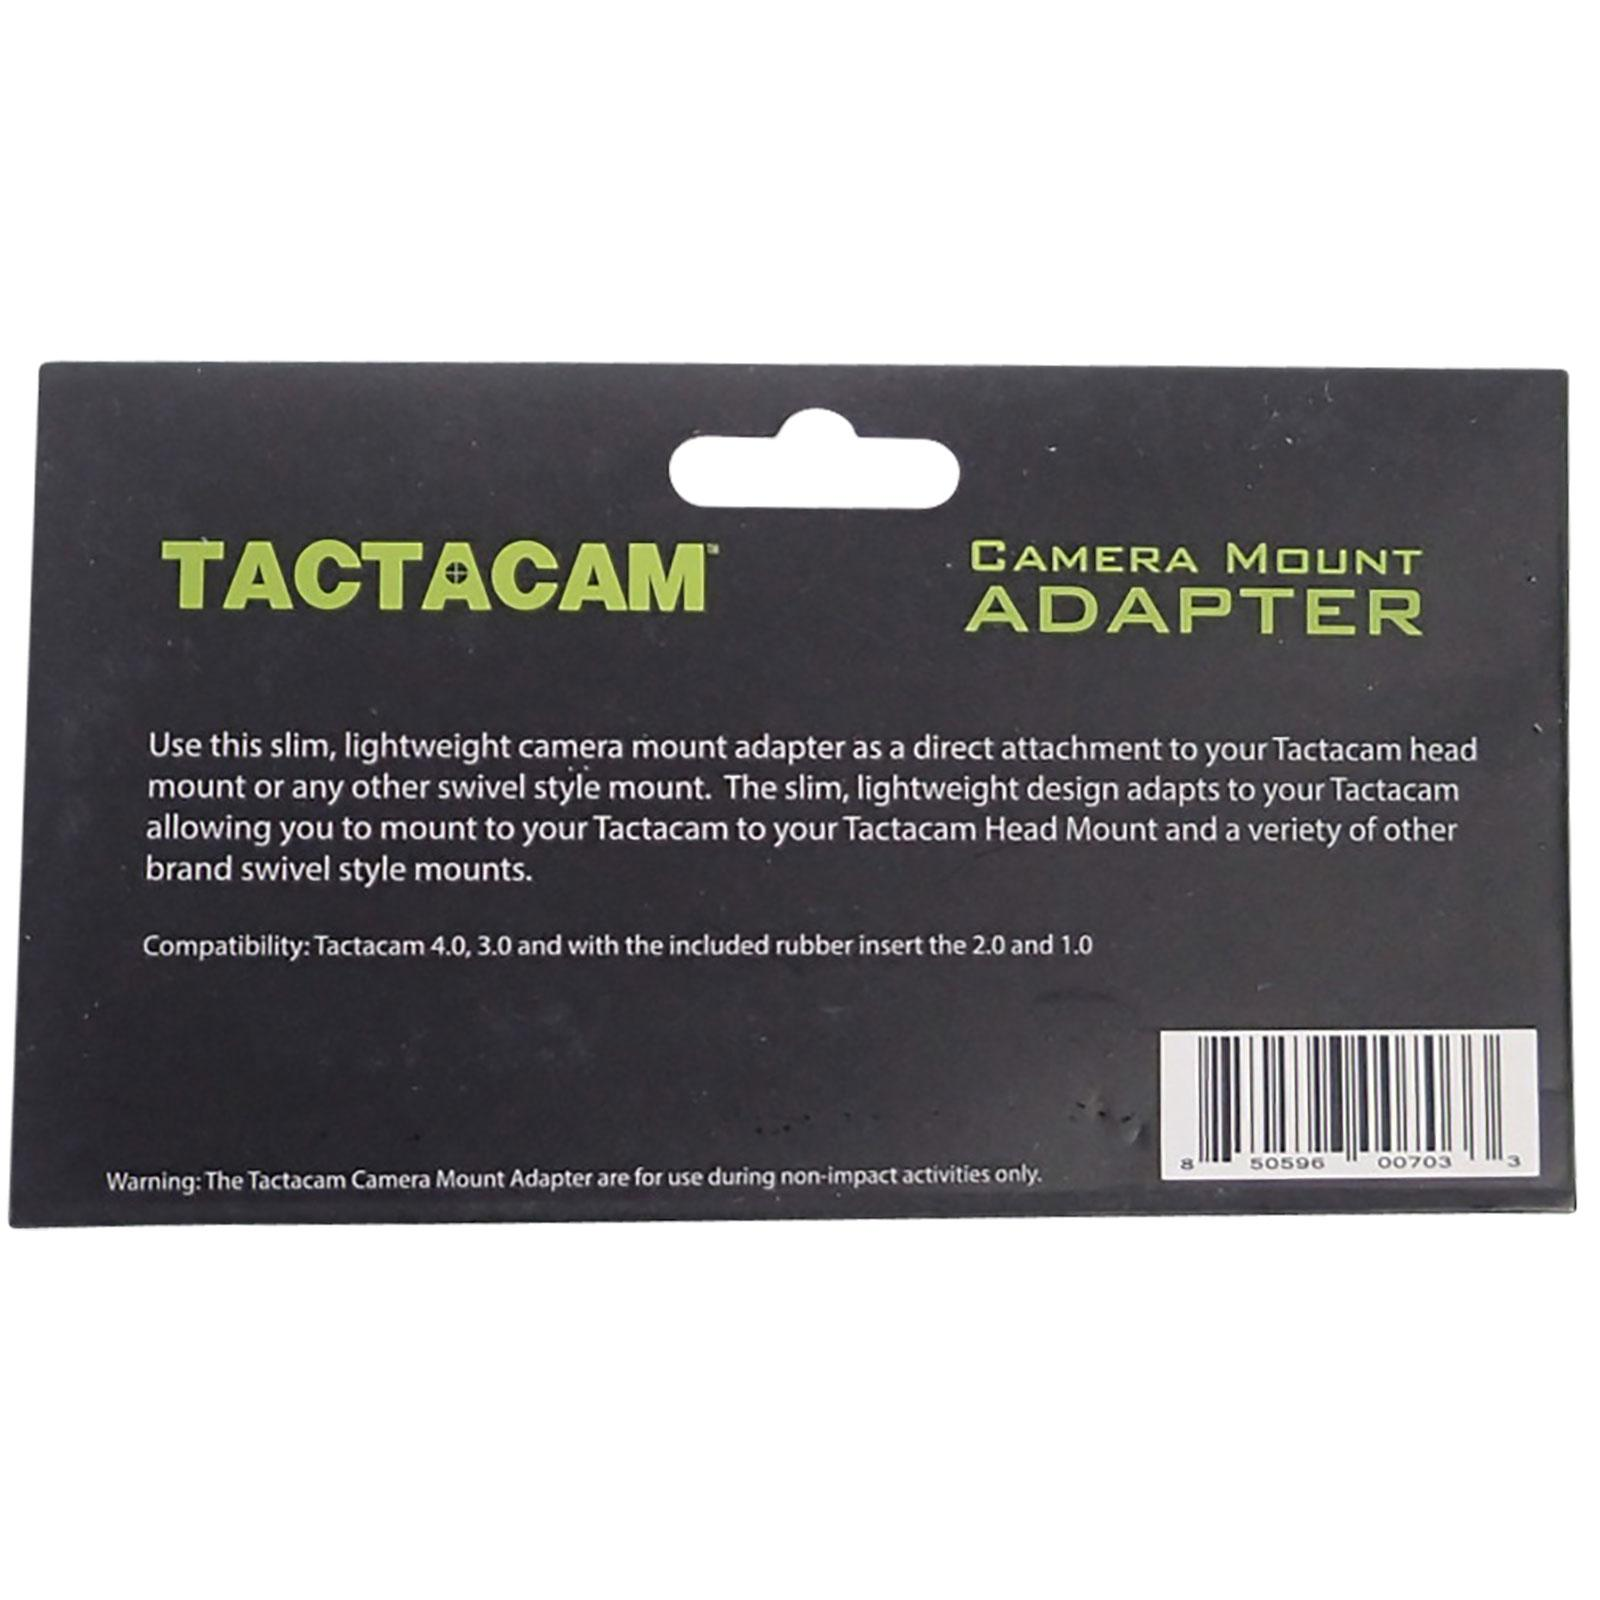 Tactacam Universal Round Mount Attachment Package Info